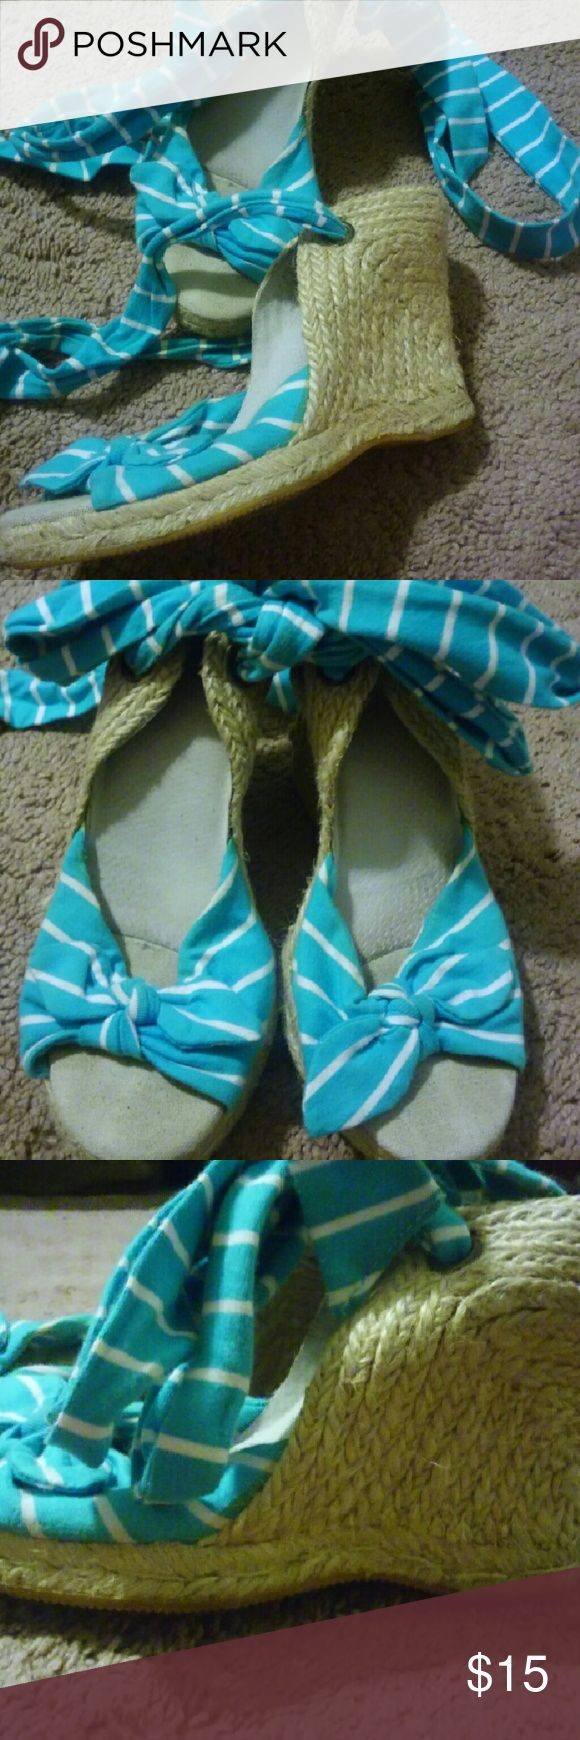 Old Navy Espardilles yhe wrap around your legs Turquoise and white striped sandals Old Navy Shoes Espadrilles